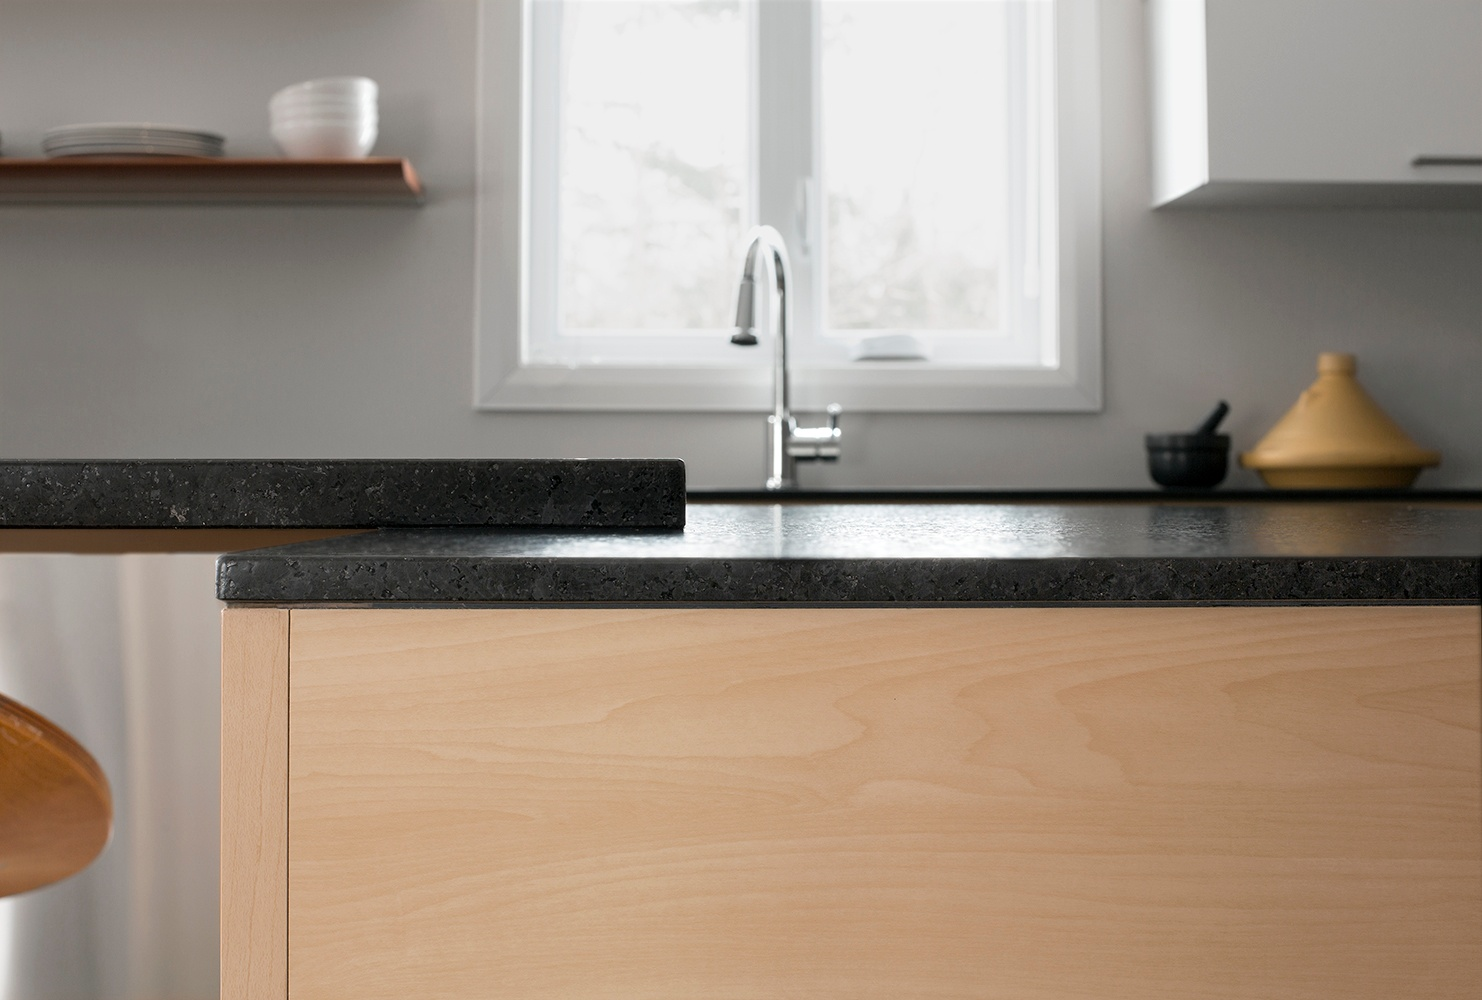 The thinness of 1 cm countertops is striking when paired with 2 cm ...